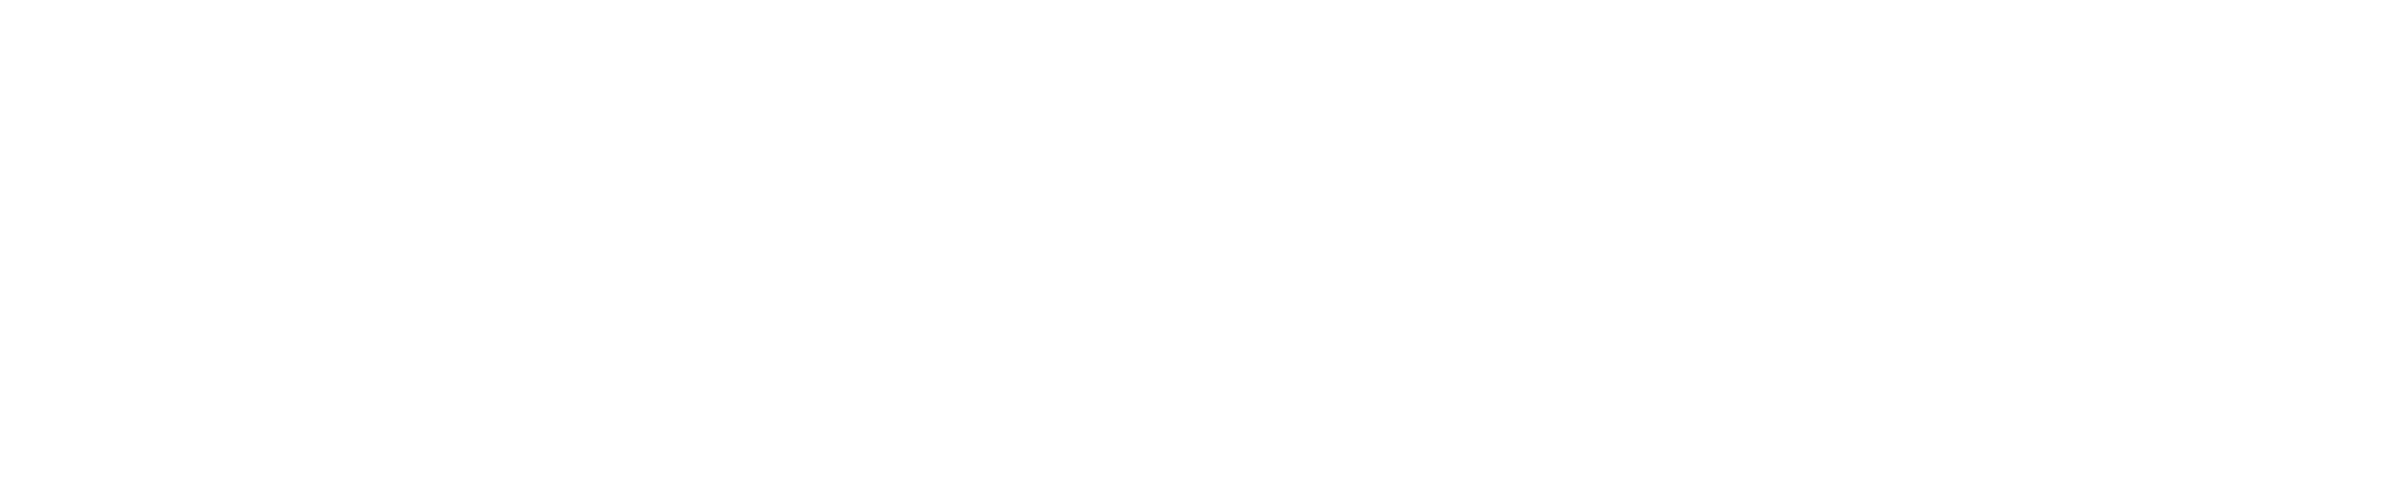 new-york-times-logo-png-transparent.png